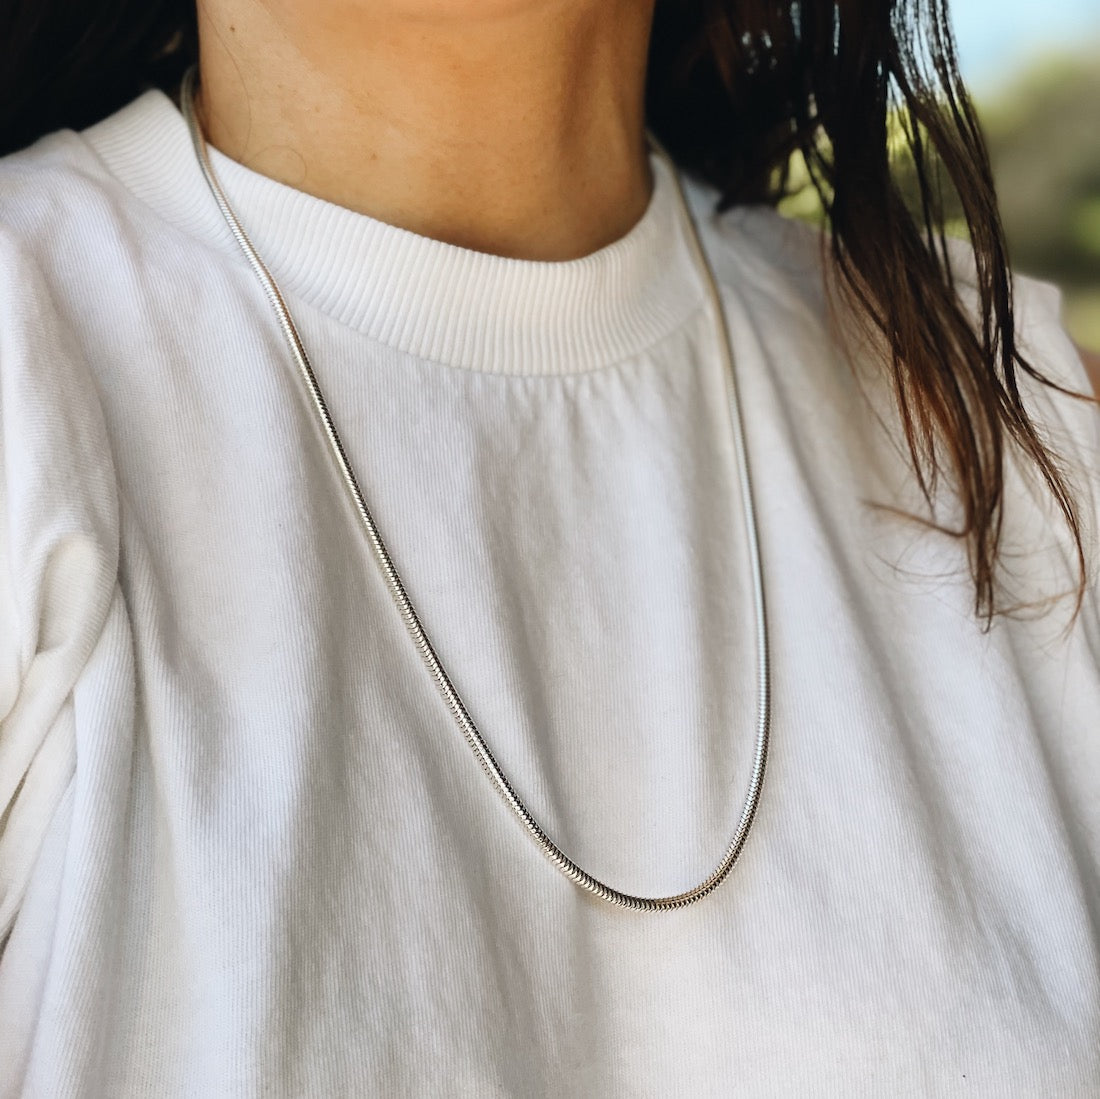 Snake Chain Necklace - Gabriela Artigas